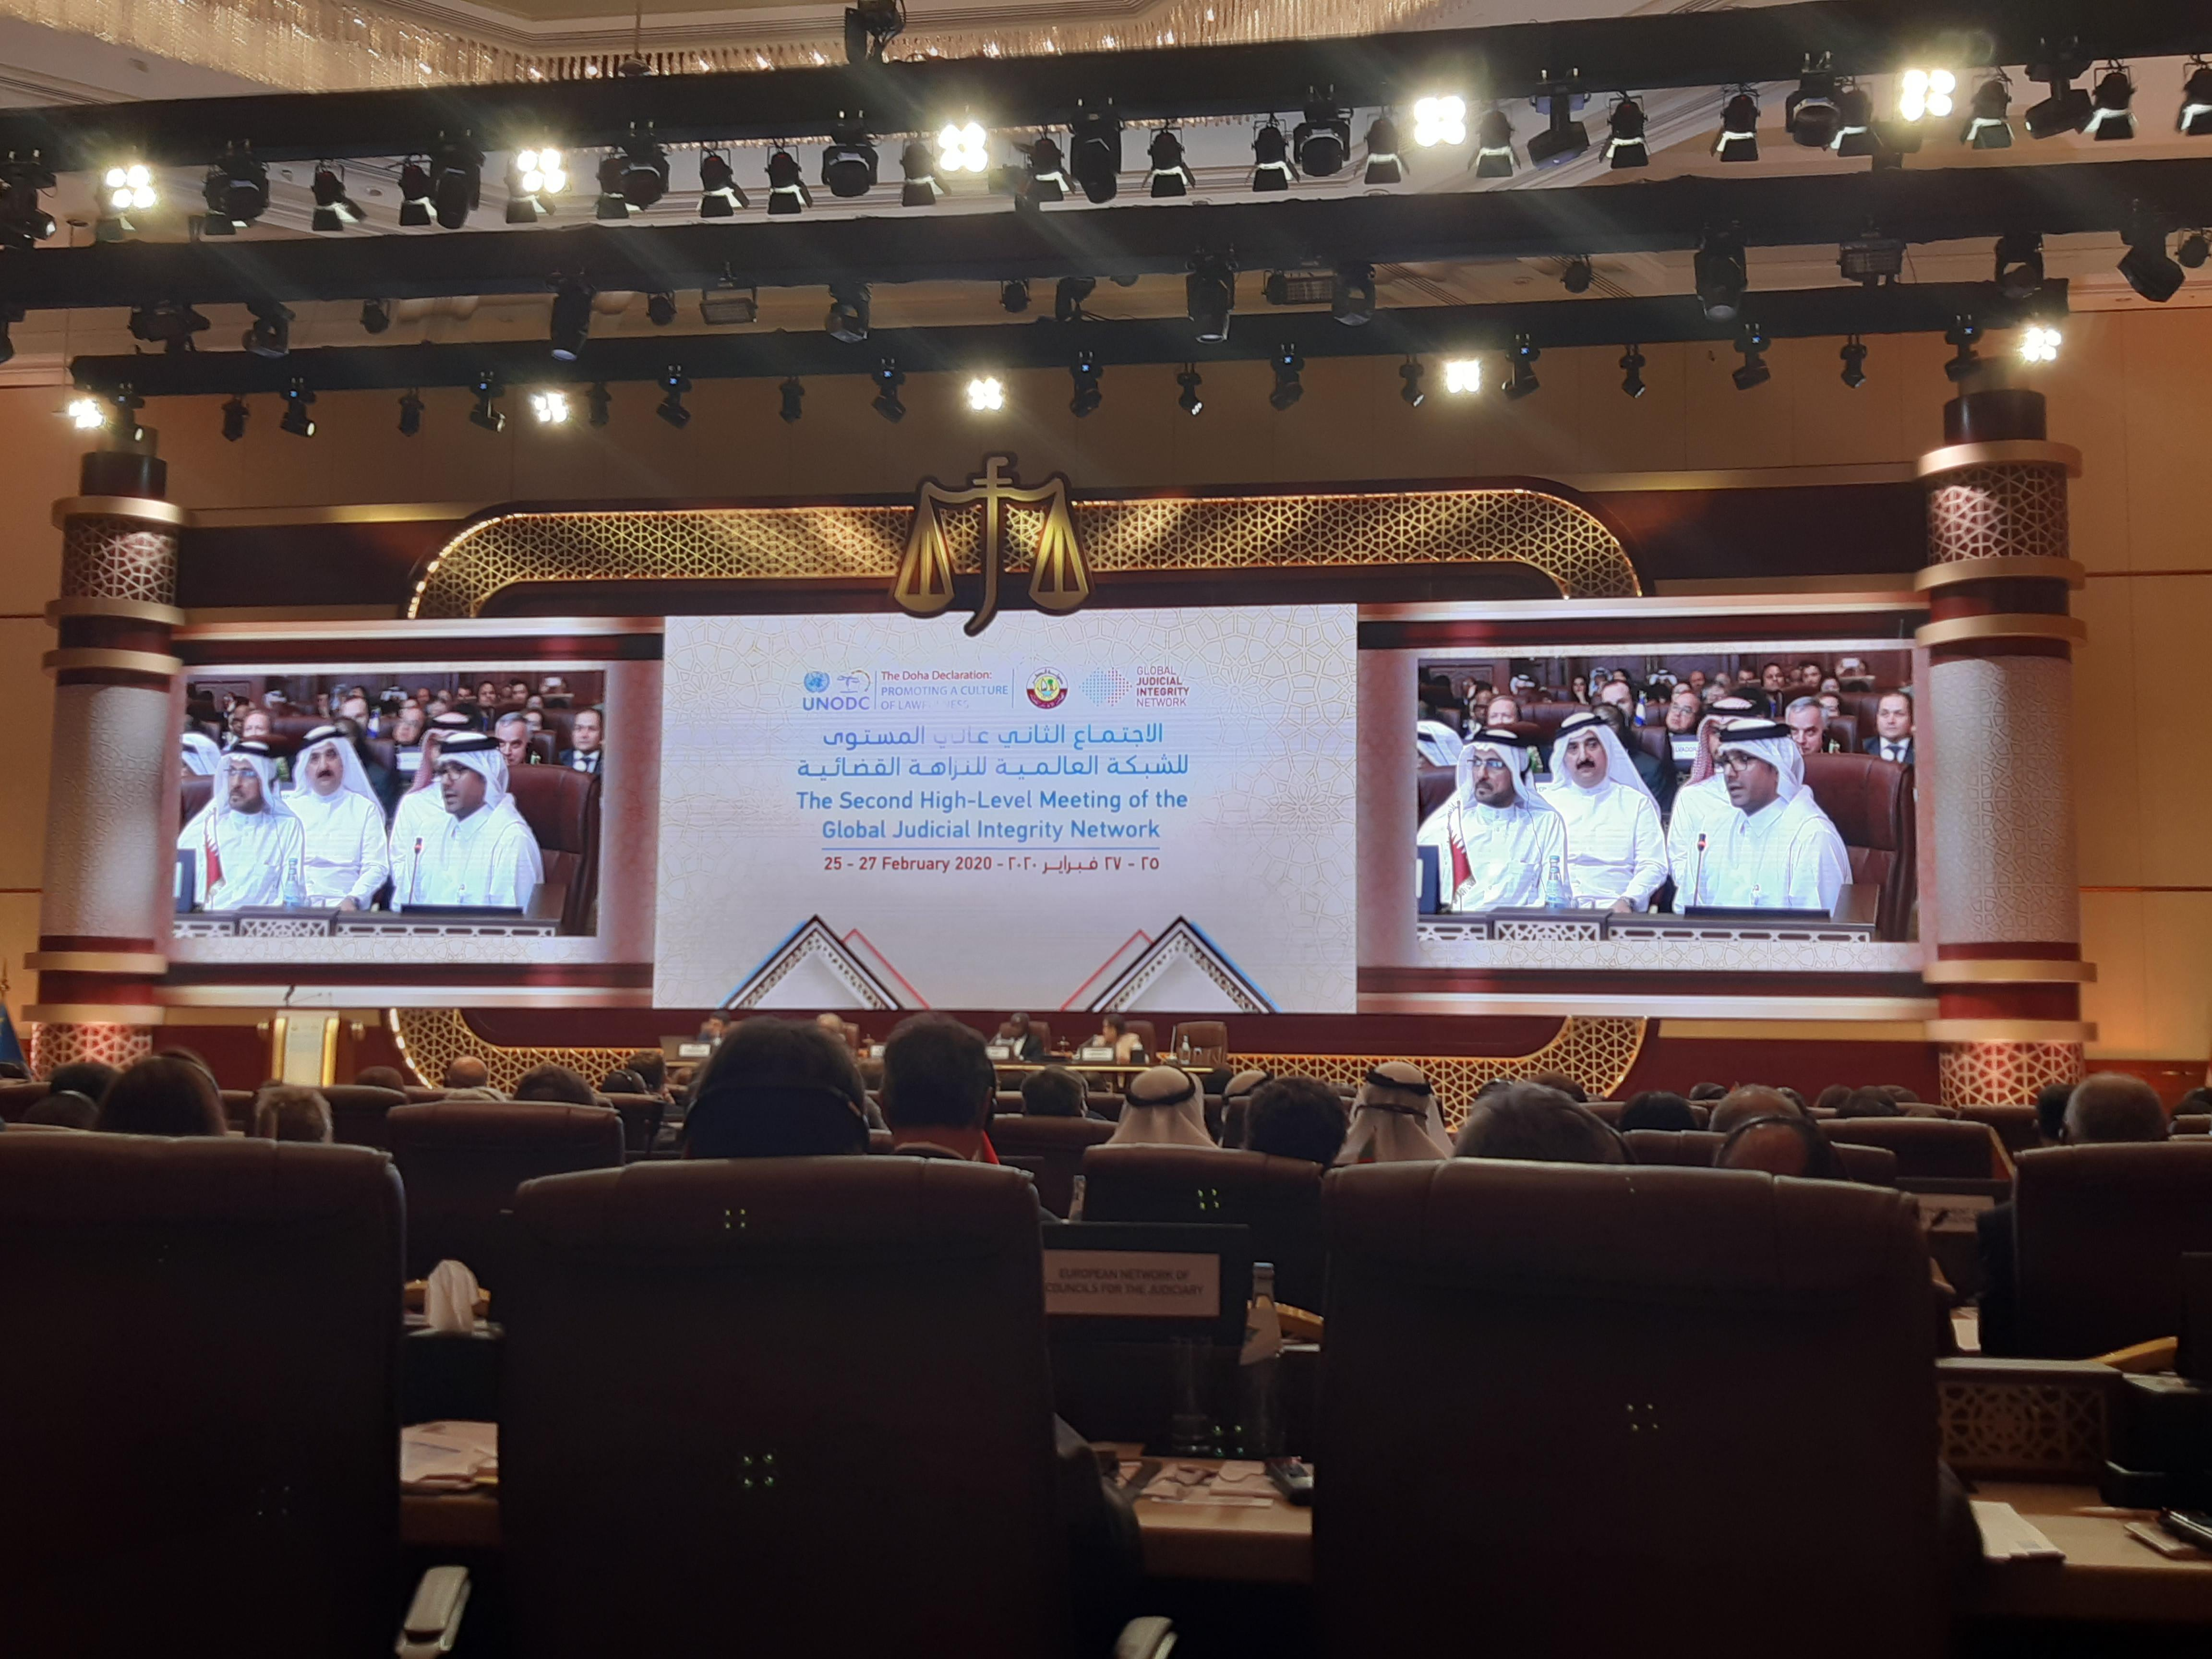 Second High-Level Meeting of the Global Judiciary Network